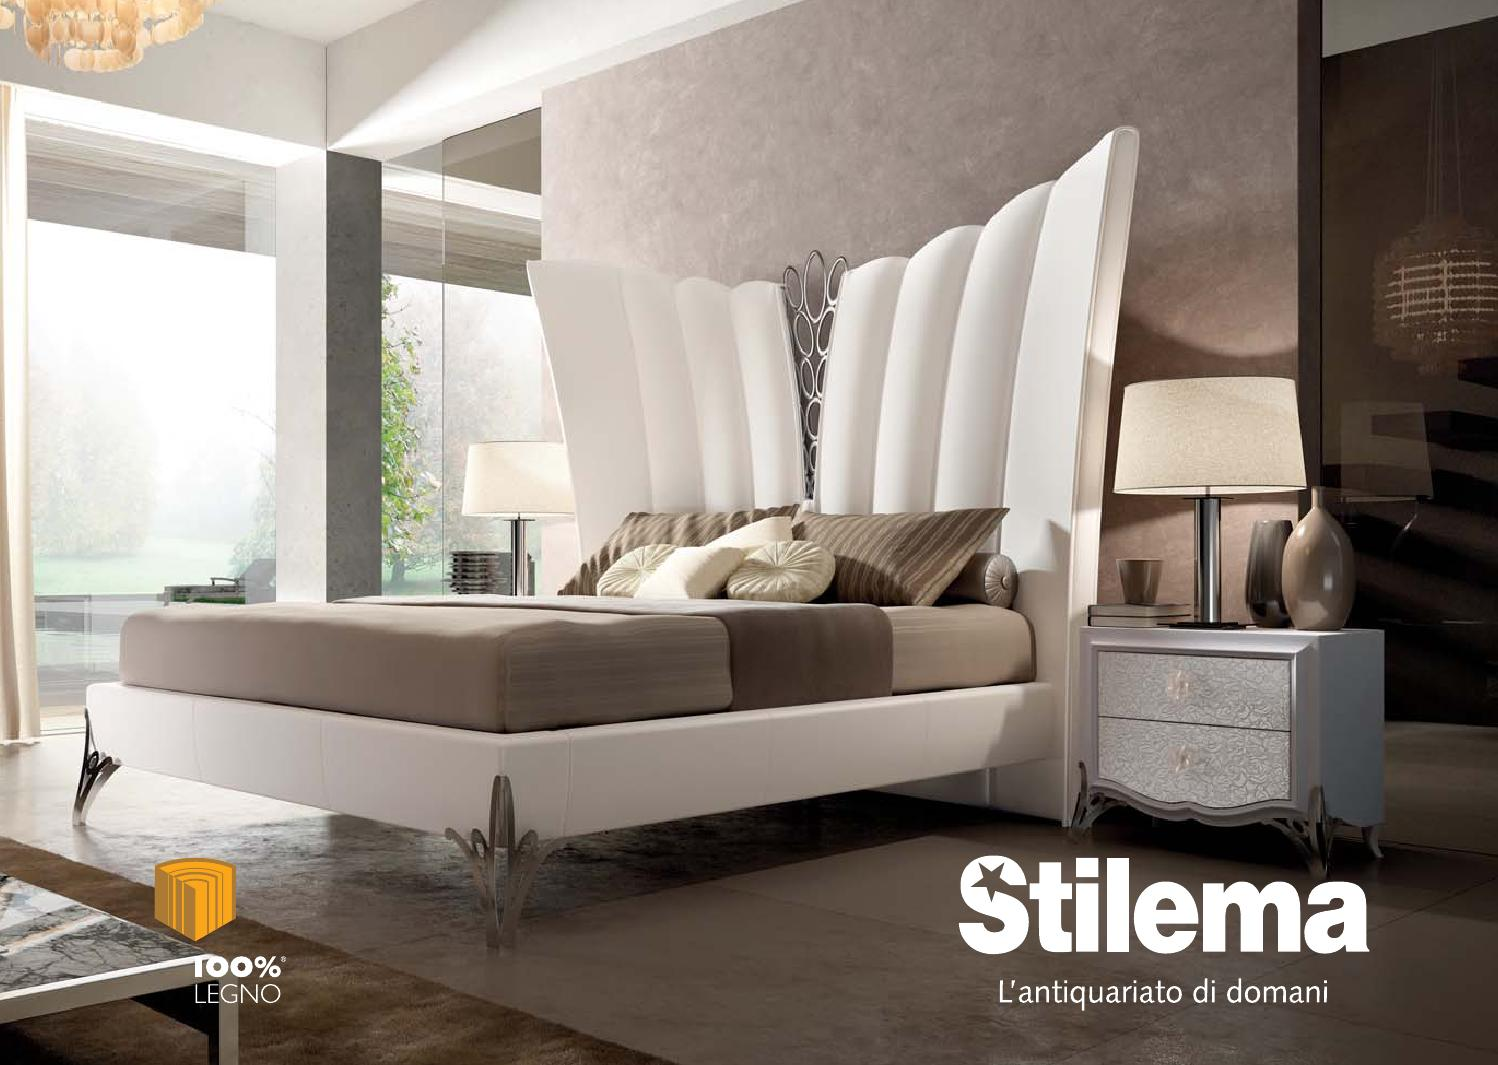 Stilema Mobili Prezzi - Home Design E Interior Ideas - Refoias.net